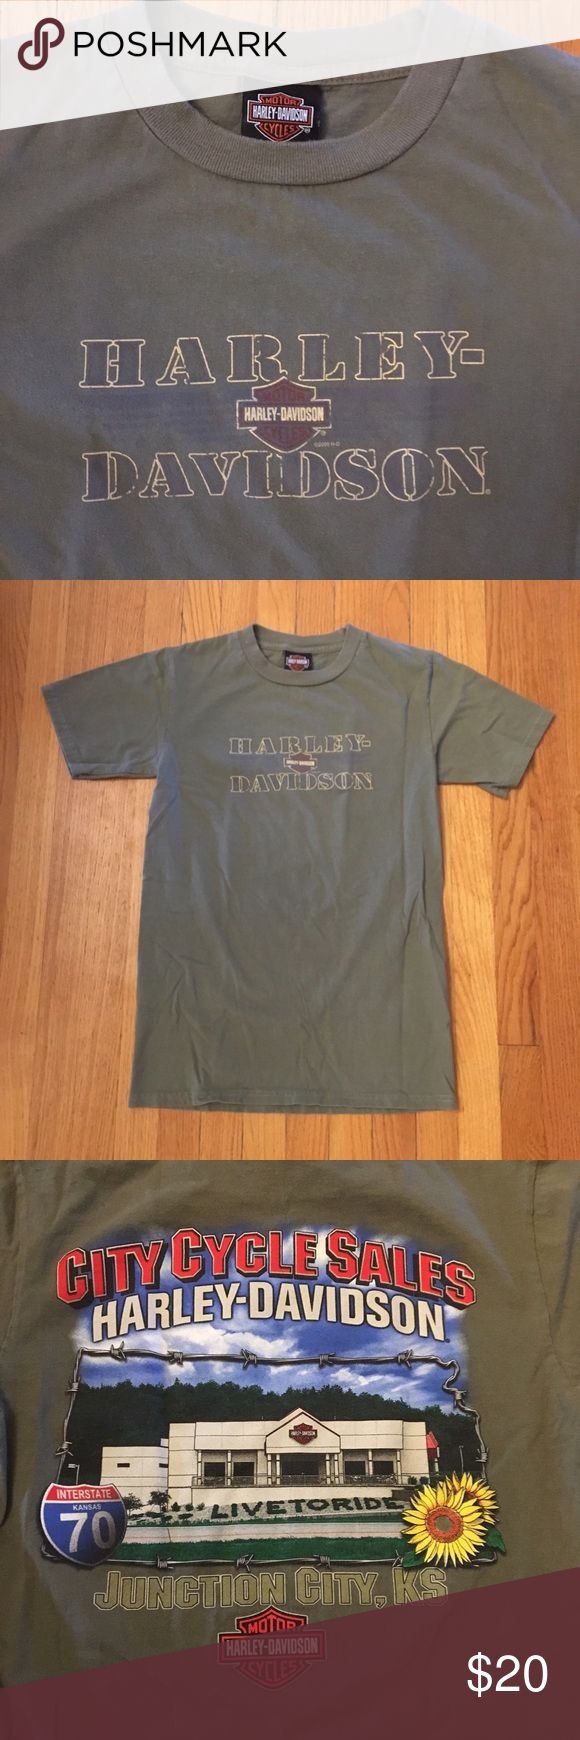 Army Green Harley Davidson T-Shirt Harley Davidson T-Shirt from a dealer in Junction City, Kansas. Faded army green color gives it a vintage vibe. I love the design on the back with the sunflower! Size small fits true. Excellent condition. Last two photos are style inspo only! Harley-Davidson Tops Tees - Short Sleeve